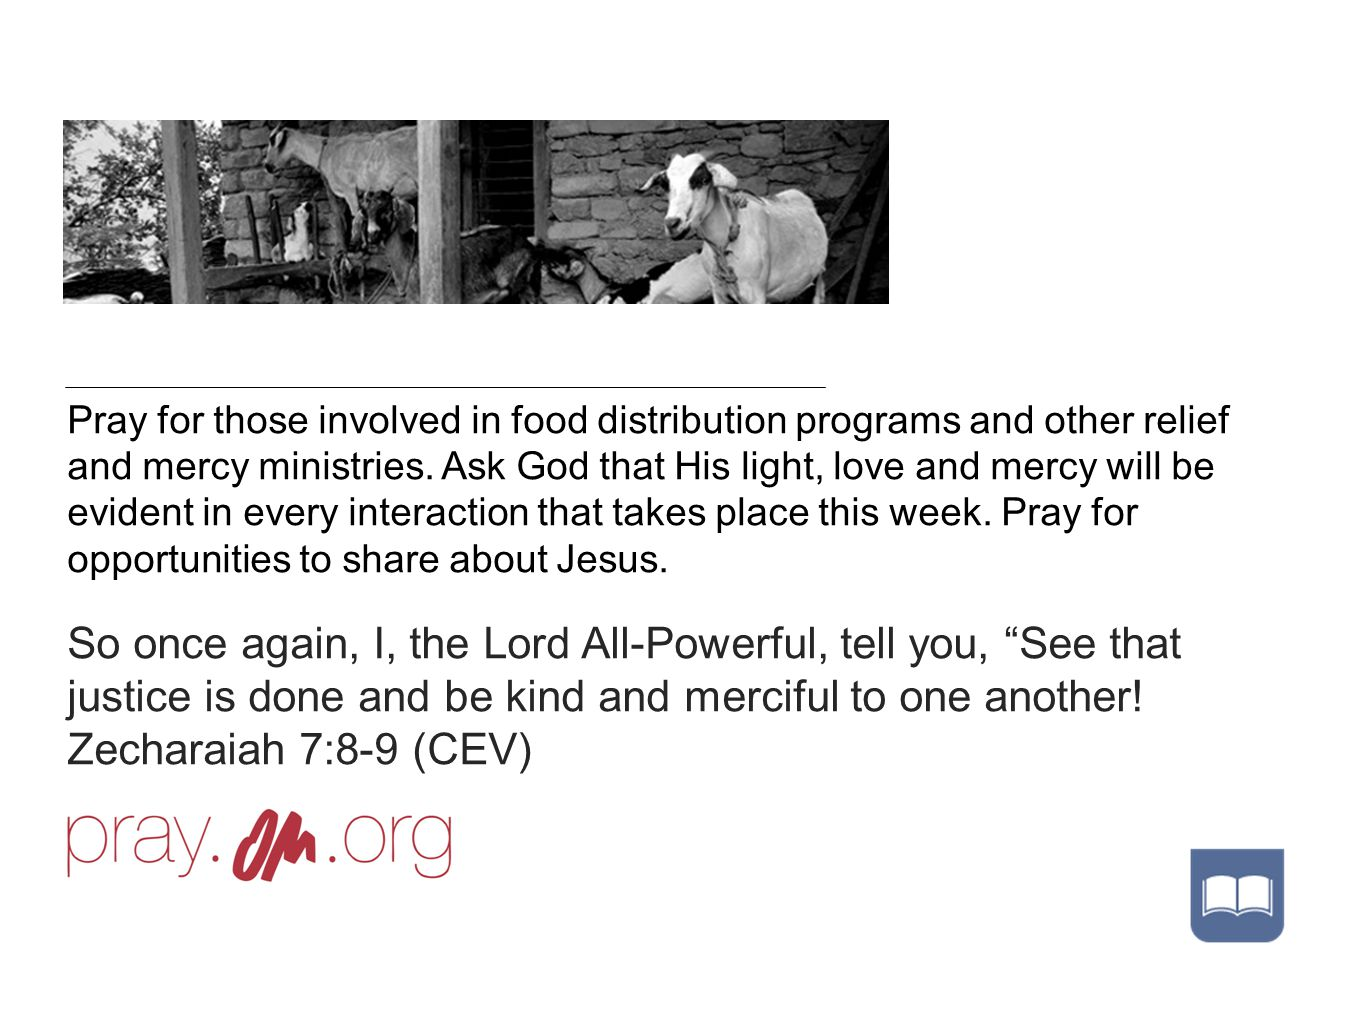 Pray for those involved in food distribution programs and other relief and mercy ministries.